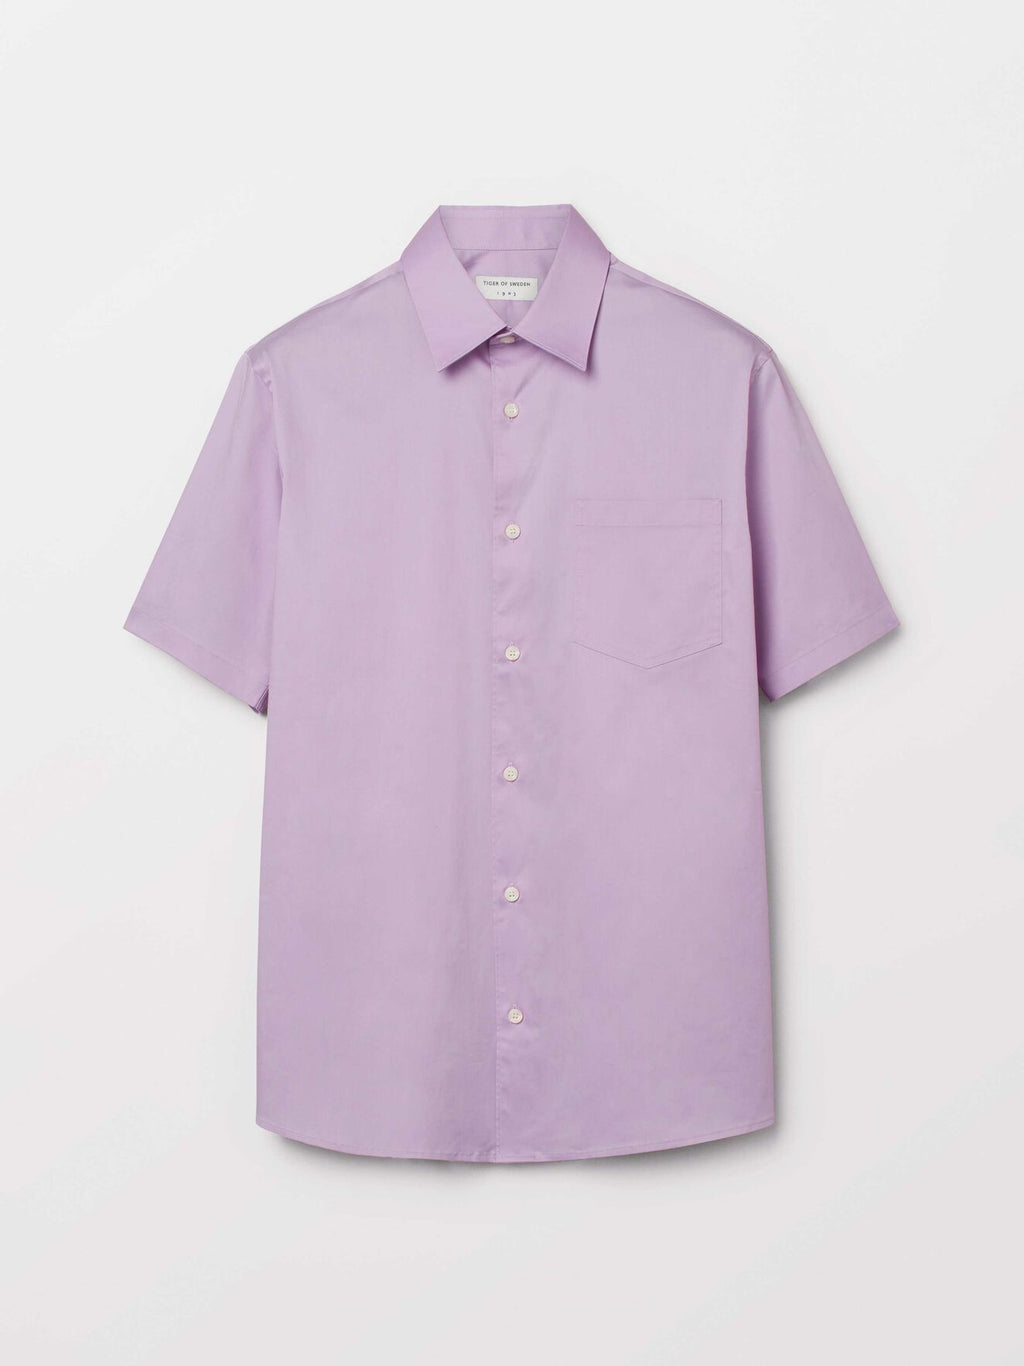 fonzo shirt purple air t39243106 Tiger of Sweden